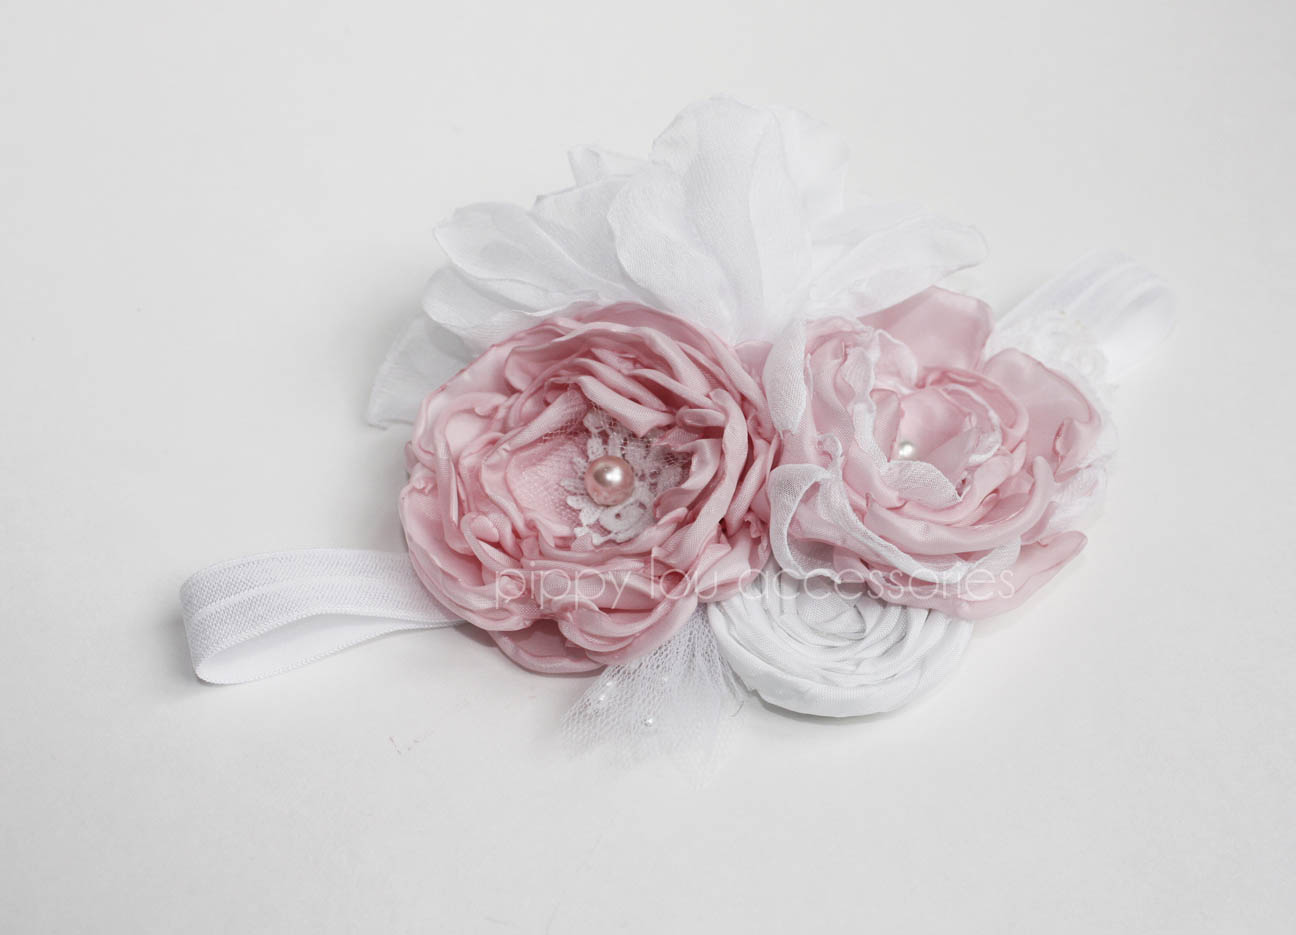 Ruffles N Roses Flower Headband Pippy Lou Accessories Online